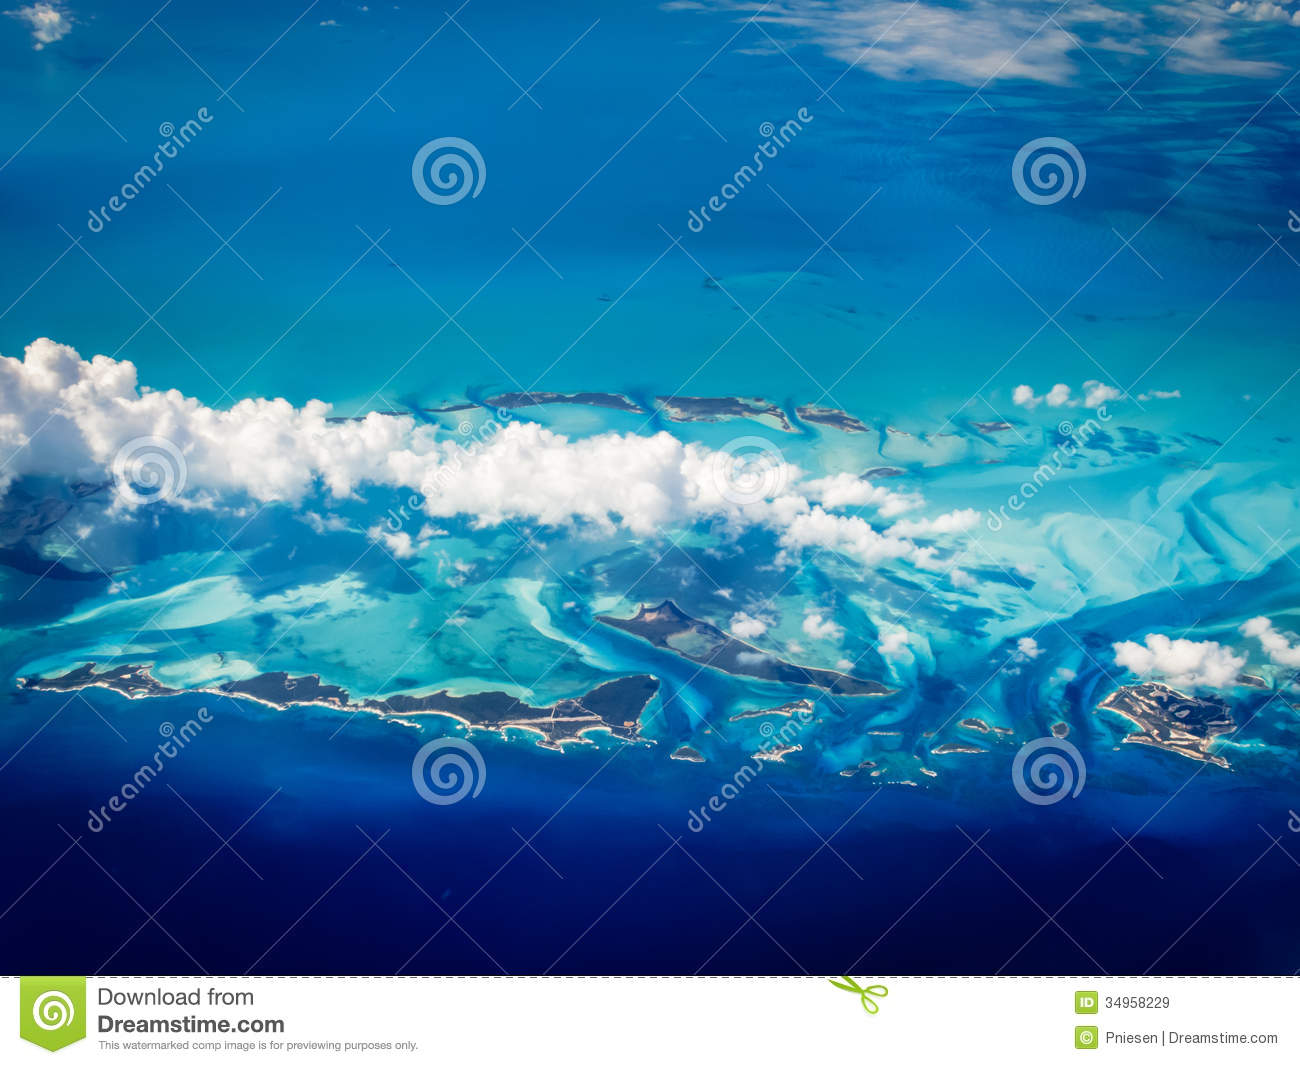 Aerial view of Caribbean Bahamas islands rising in a turquoise sea